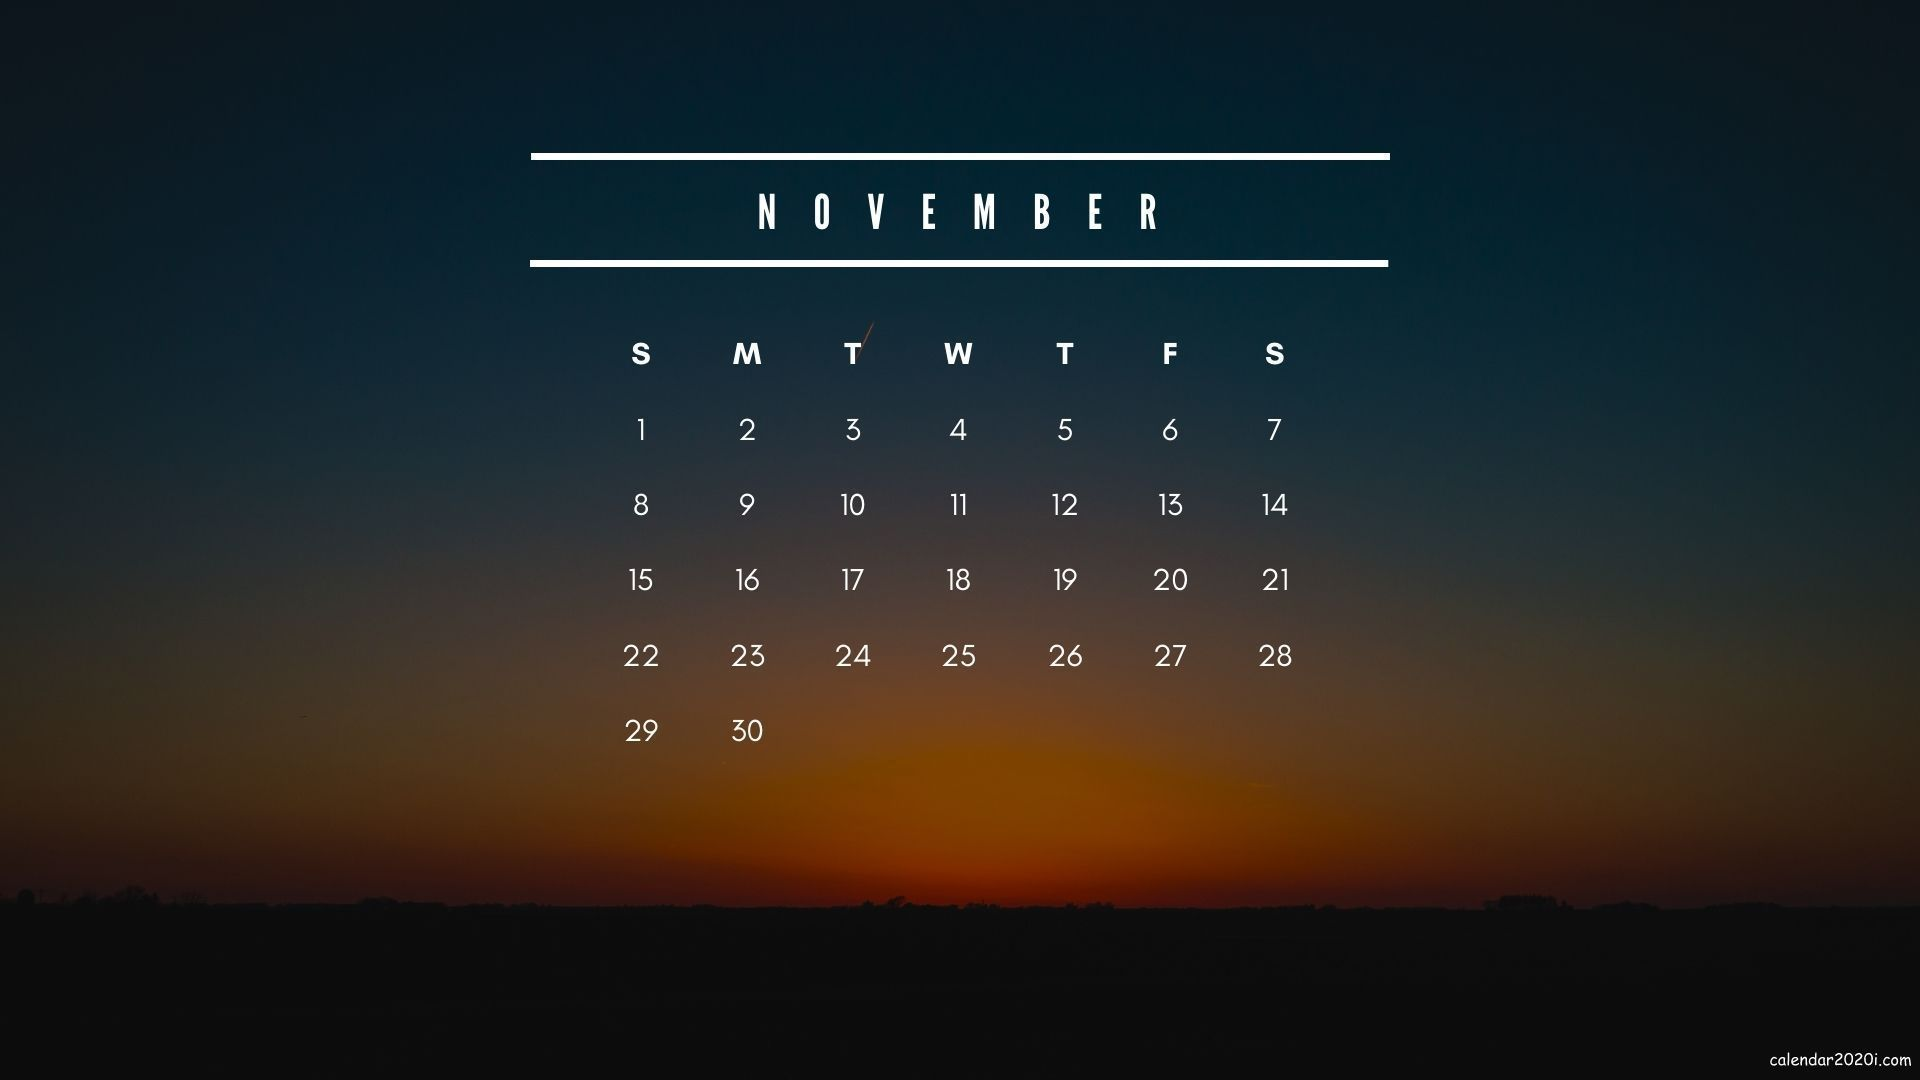 November 2020 Calendar Wallpapers for desktop backgrounds screen in 2020